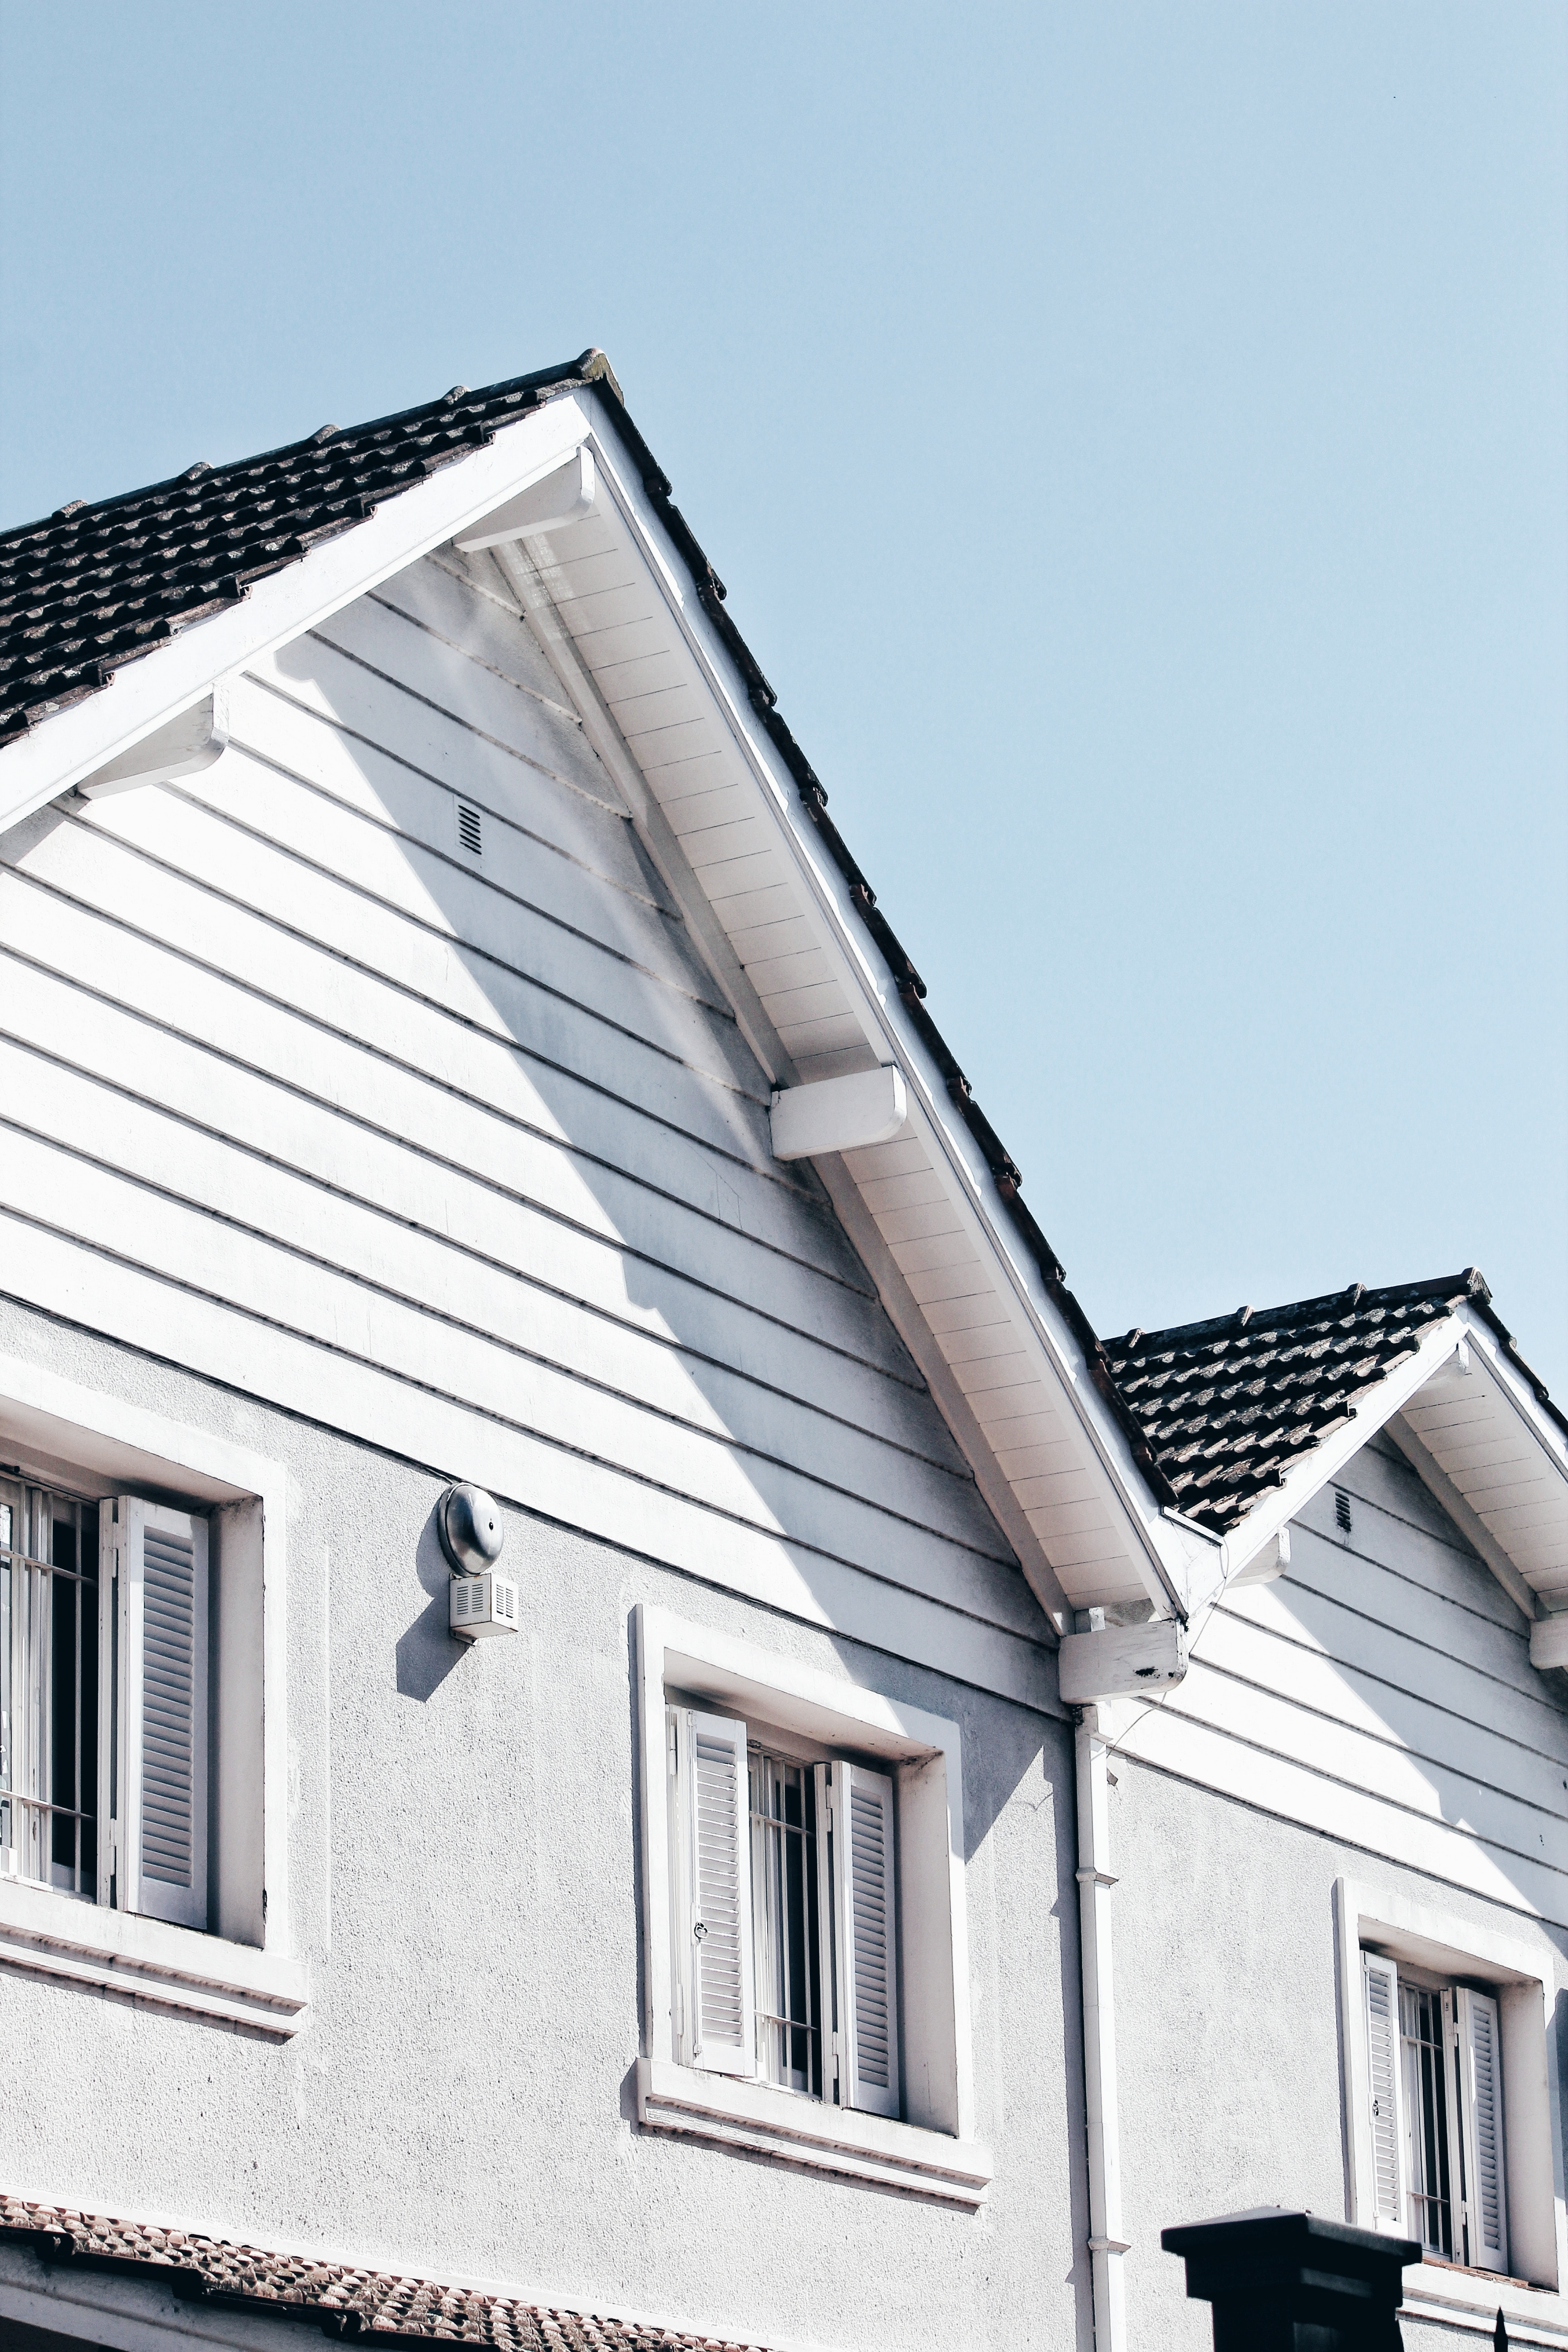 pointed roof of a house with white woodwork and white window shutters